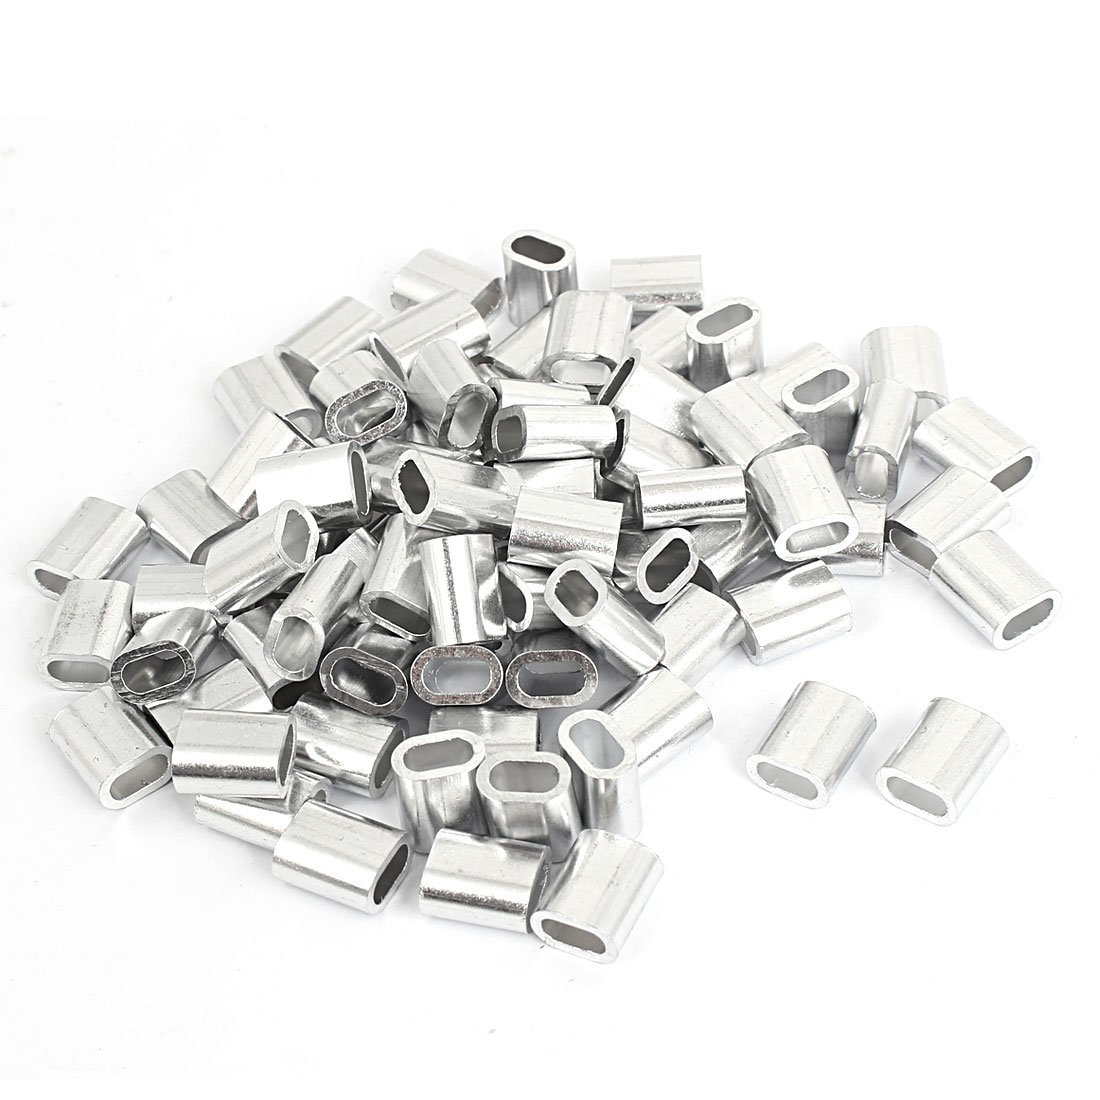 uxcell 4mm Wire Rope Swage Clip M4 Oval Aluminum Sleeves Clamps 80pcs